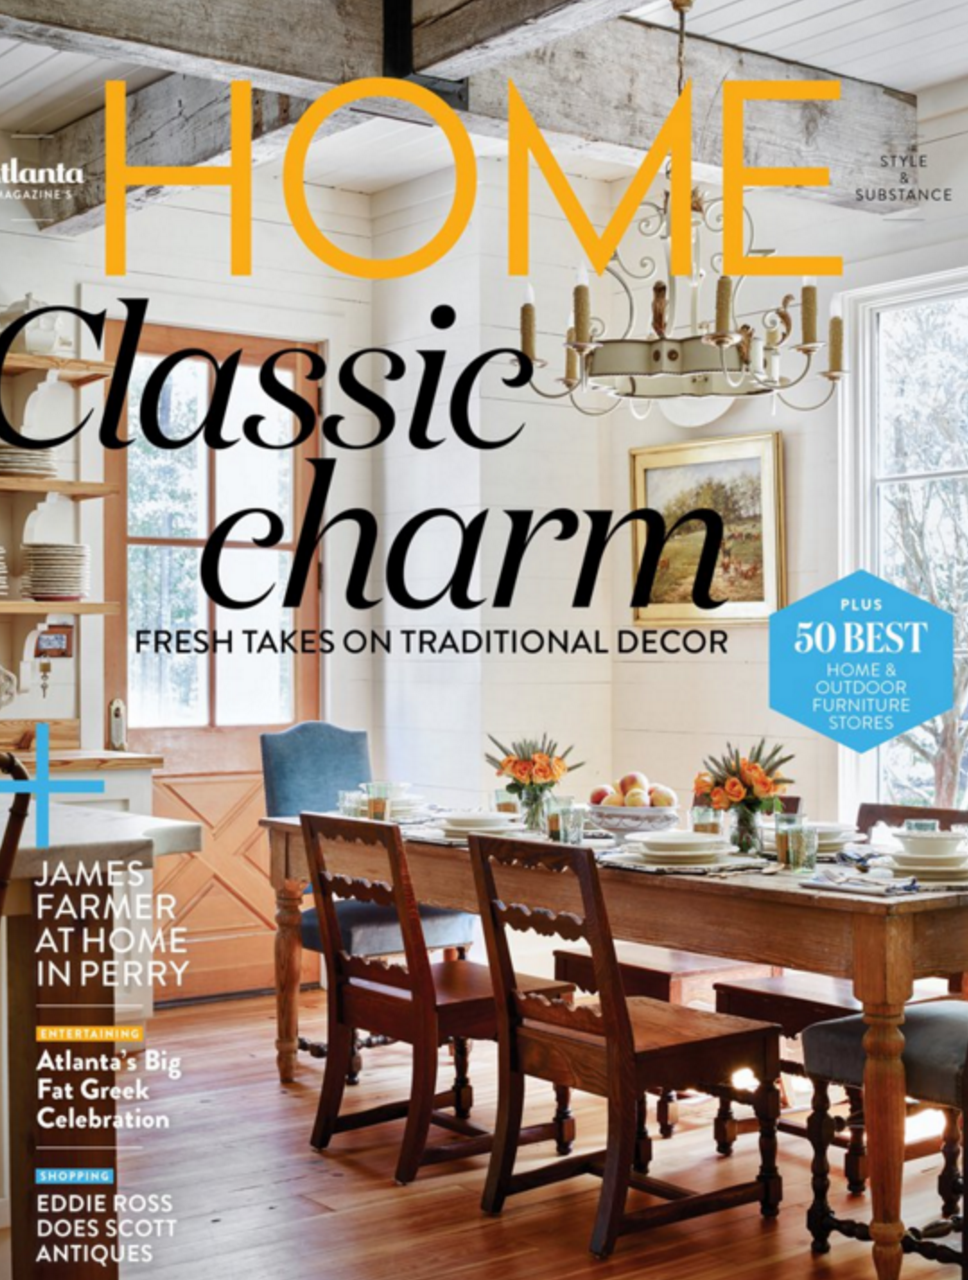 Atlanta Magazine Home | Spring 2016 Issue  | 50 Best Home and Outdoor Furniture Stores in Atlanta